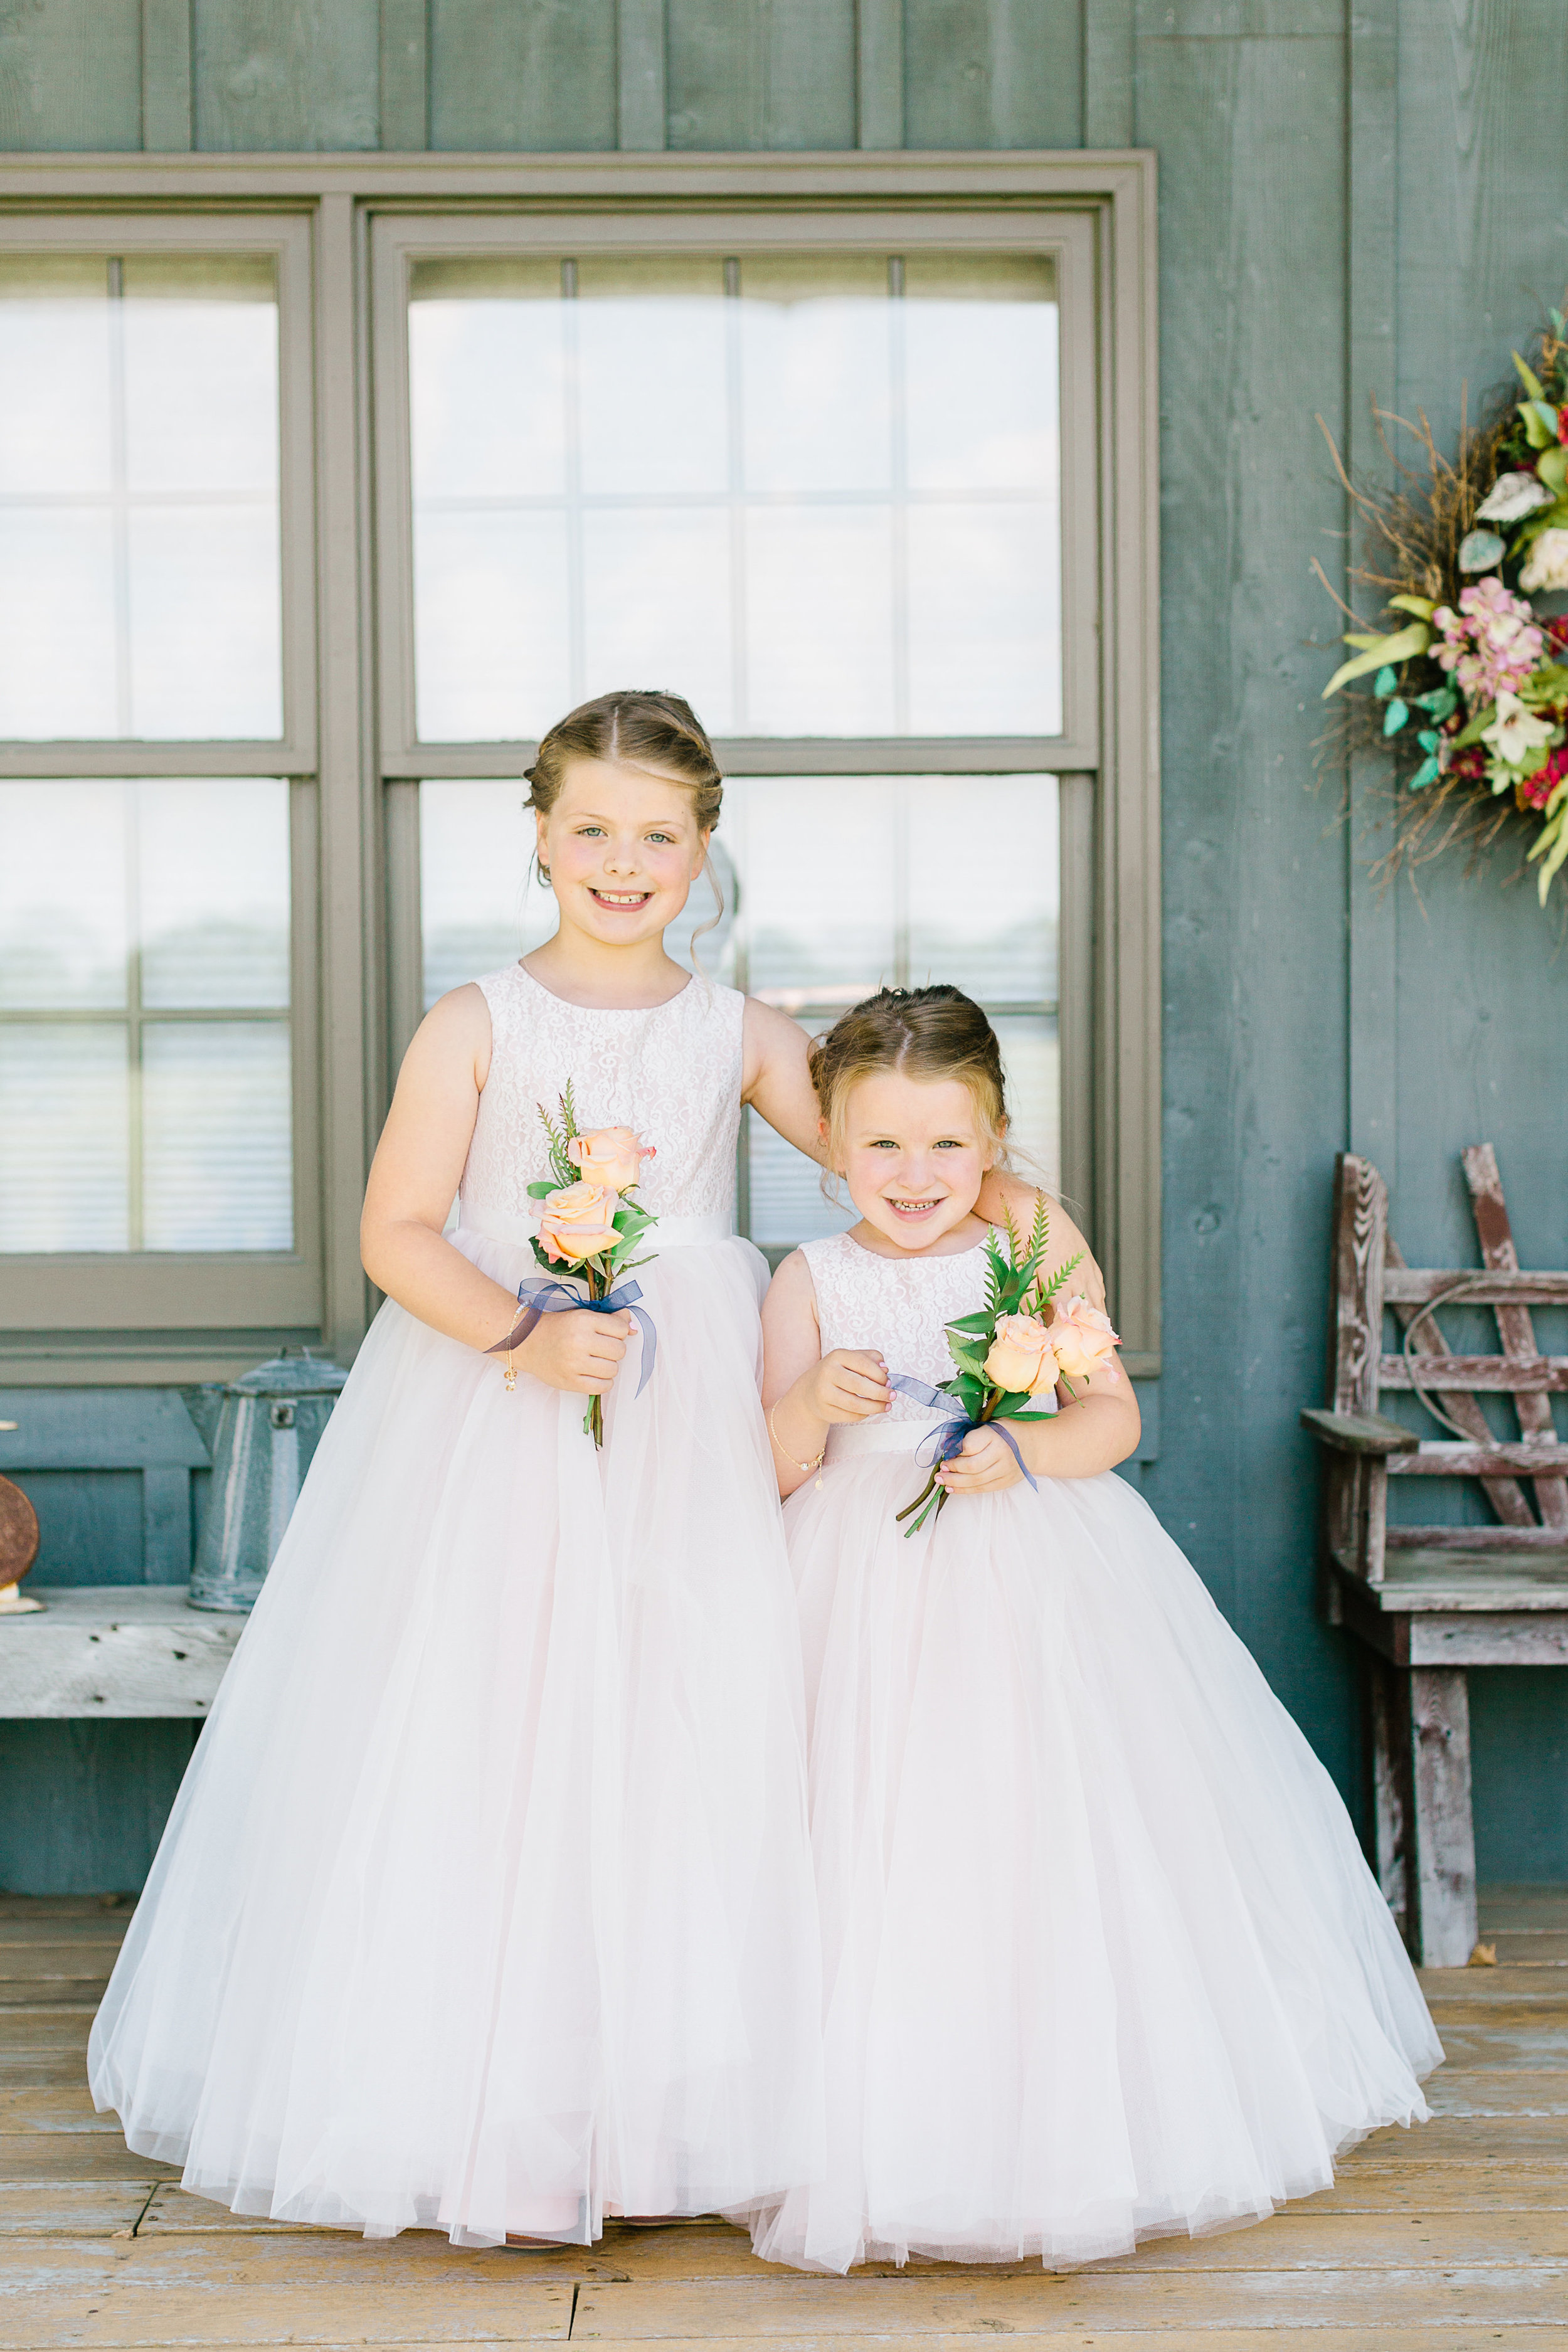 Country Wedding Flower Girls J.Blu Design Wedding Florist